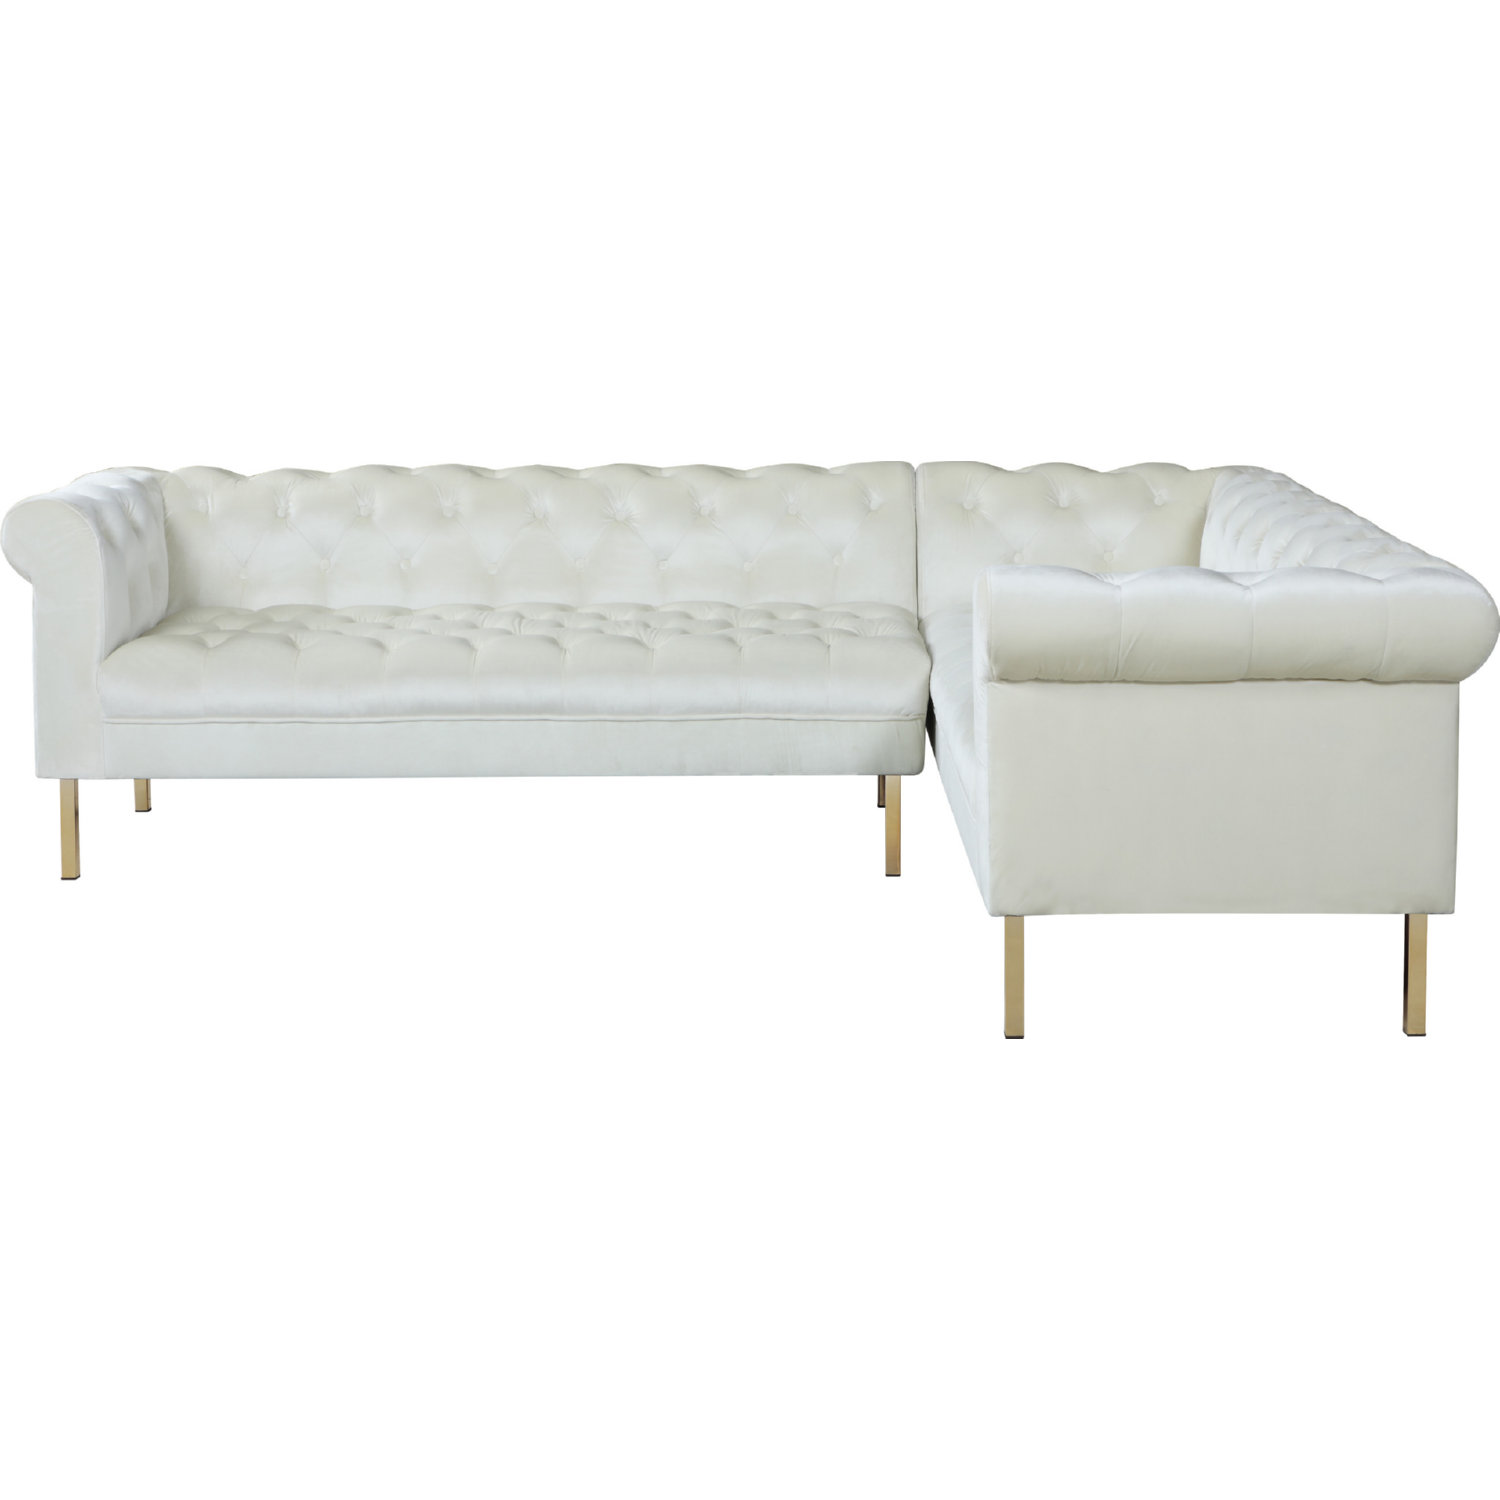 Chic Iconic FSA9206-DR Giovanni Right Sectional Sofa In Tufted Beige Velvet On Gold Legs